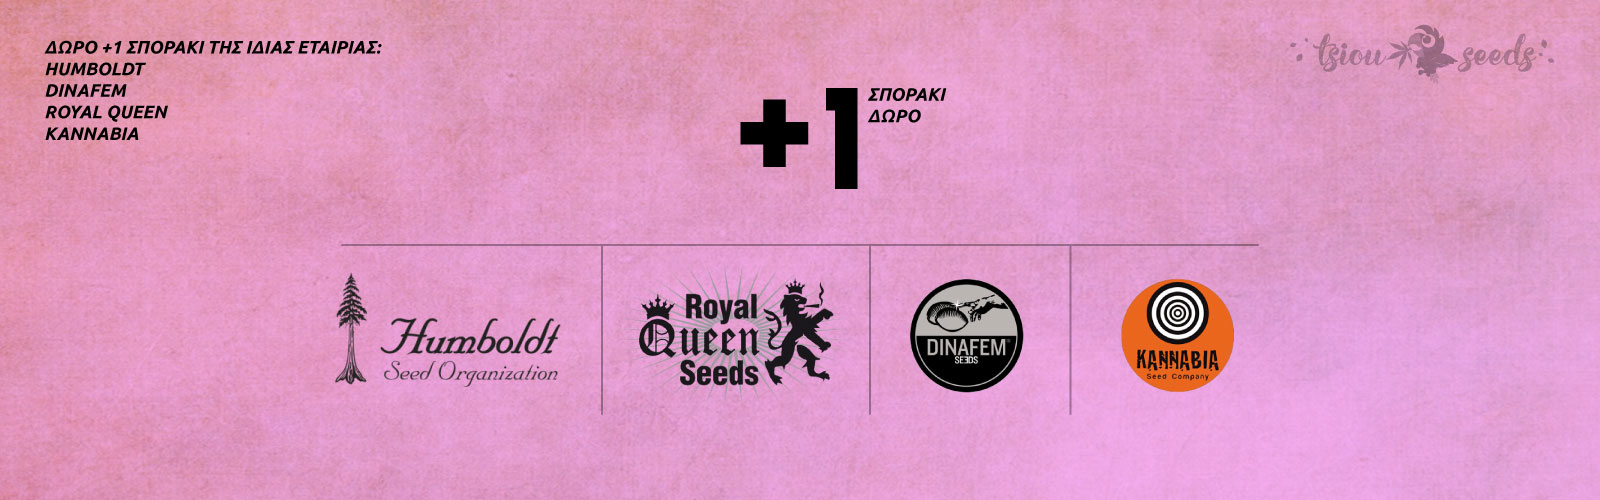 TsiouSeeds-Offer-Seeds-plus1-Oct2019